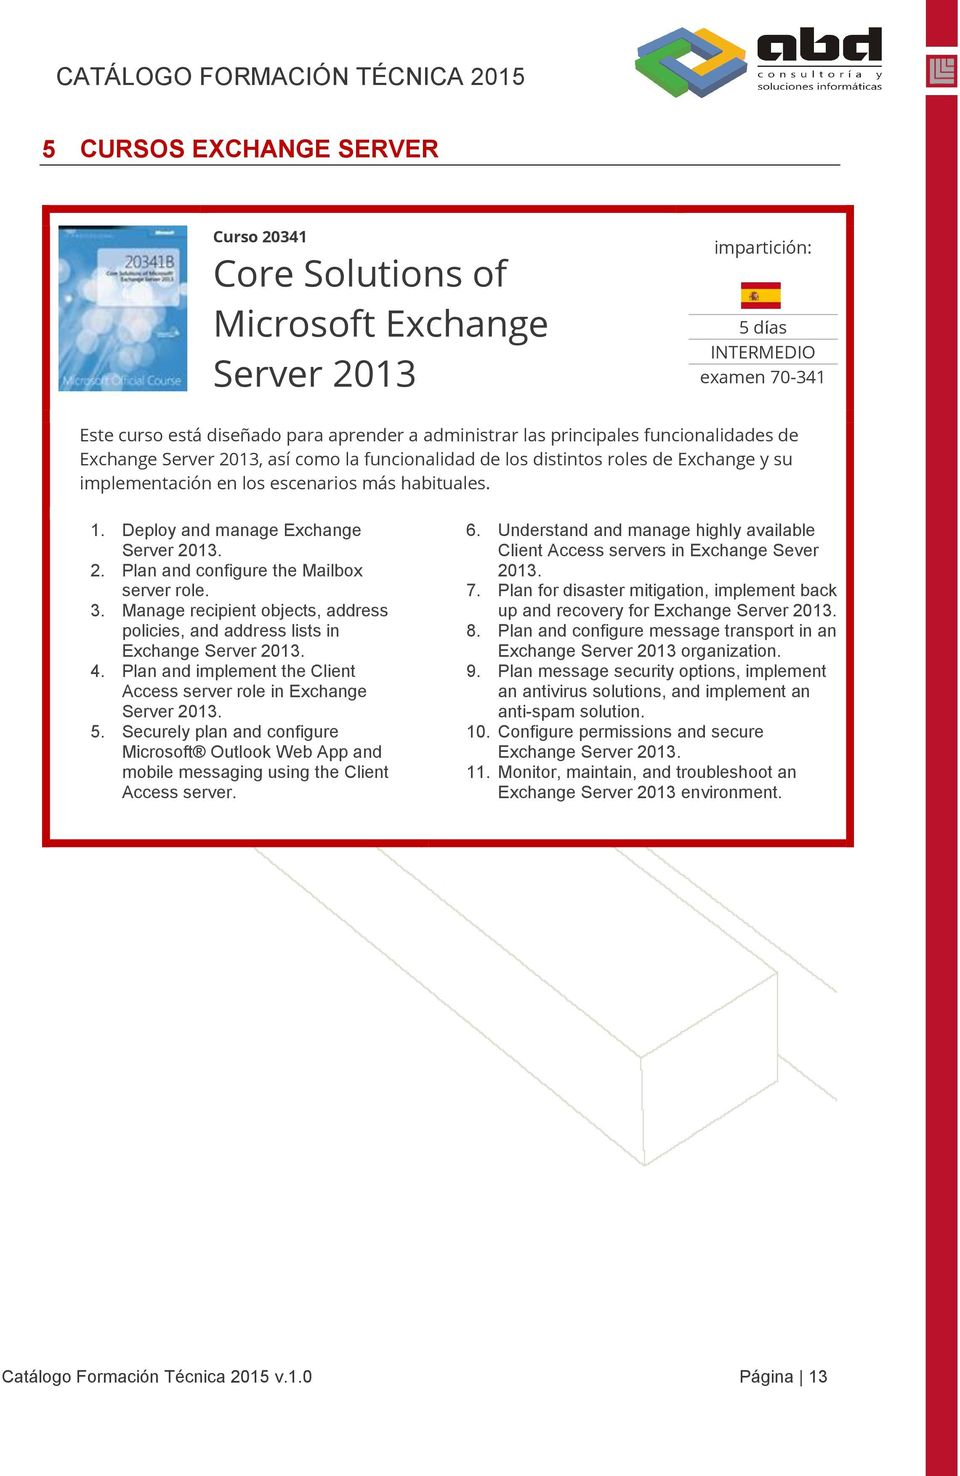 3. Manage recipient objects, address policies, and address lists in Exchange Server 2013. 4. Plan and implement the Client Access server role in Exchange Server 2013. 5.